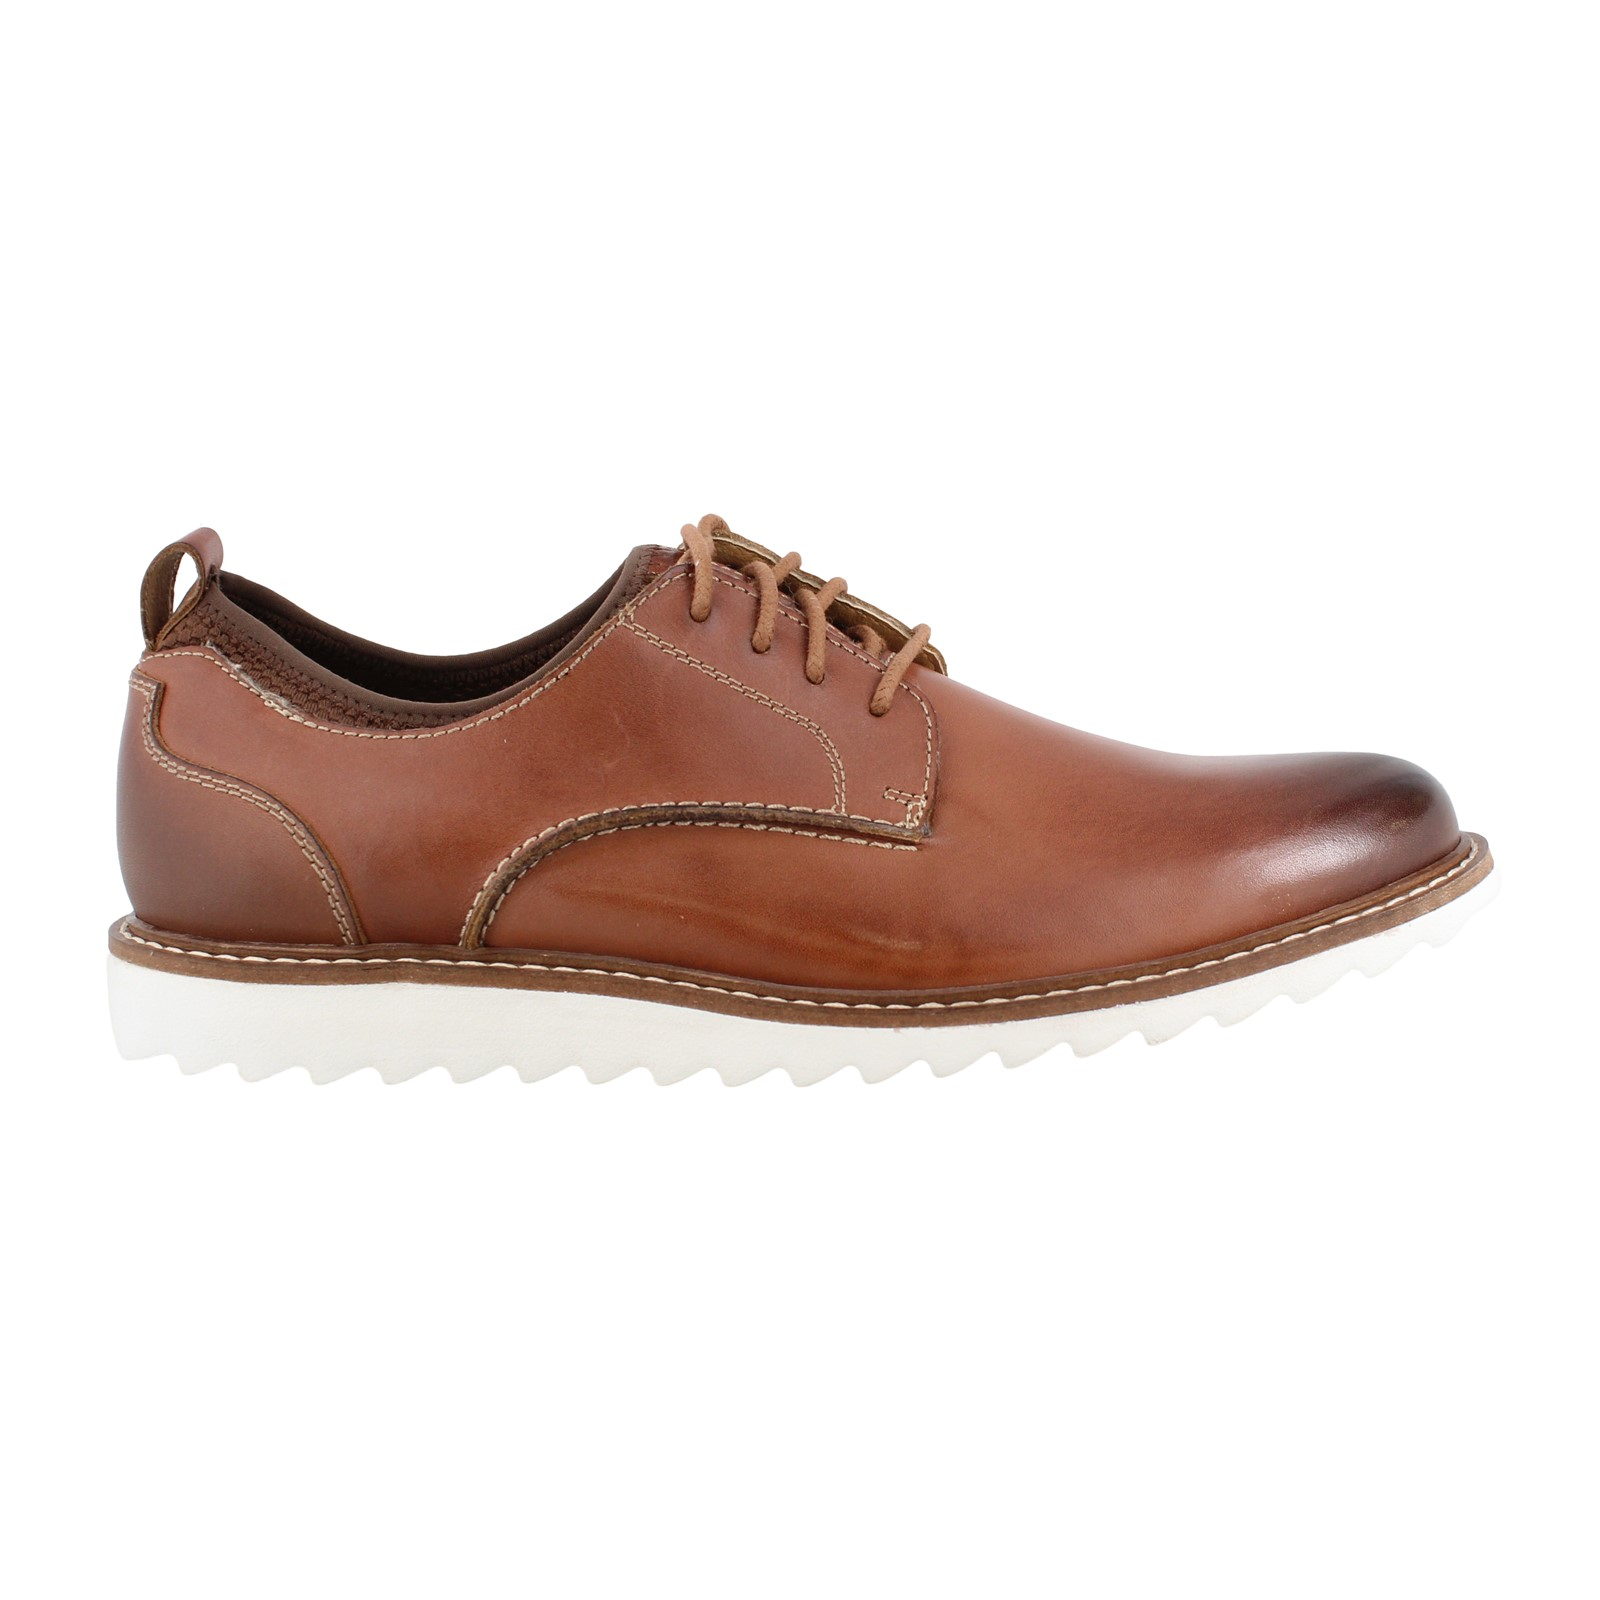 Mens GH Bass and Co, Dirtybuck 2.0 Lace up Oxfords